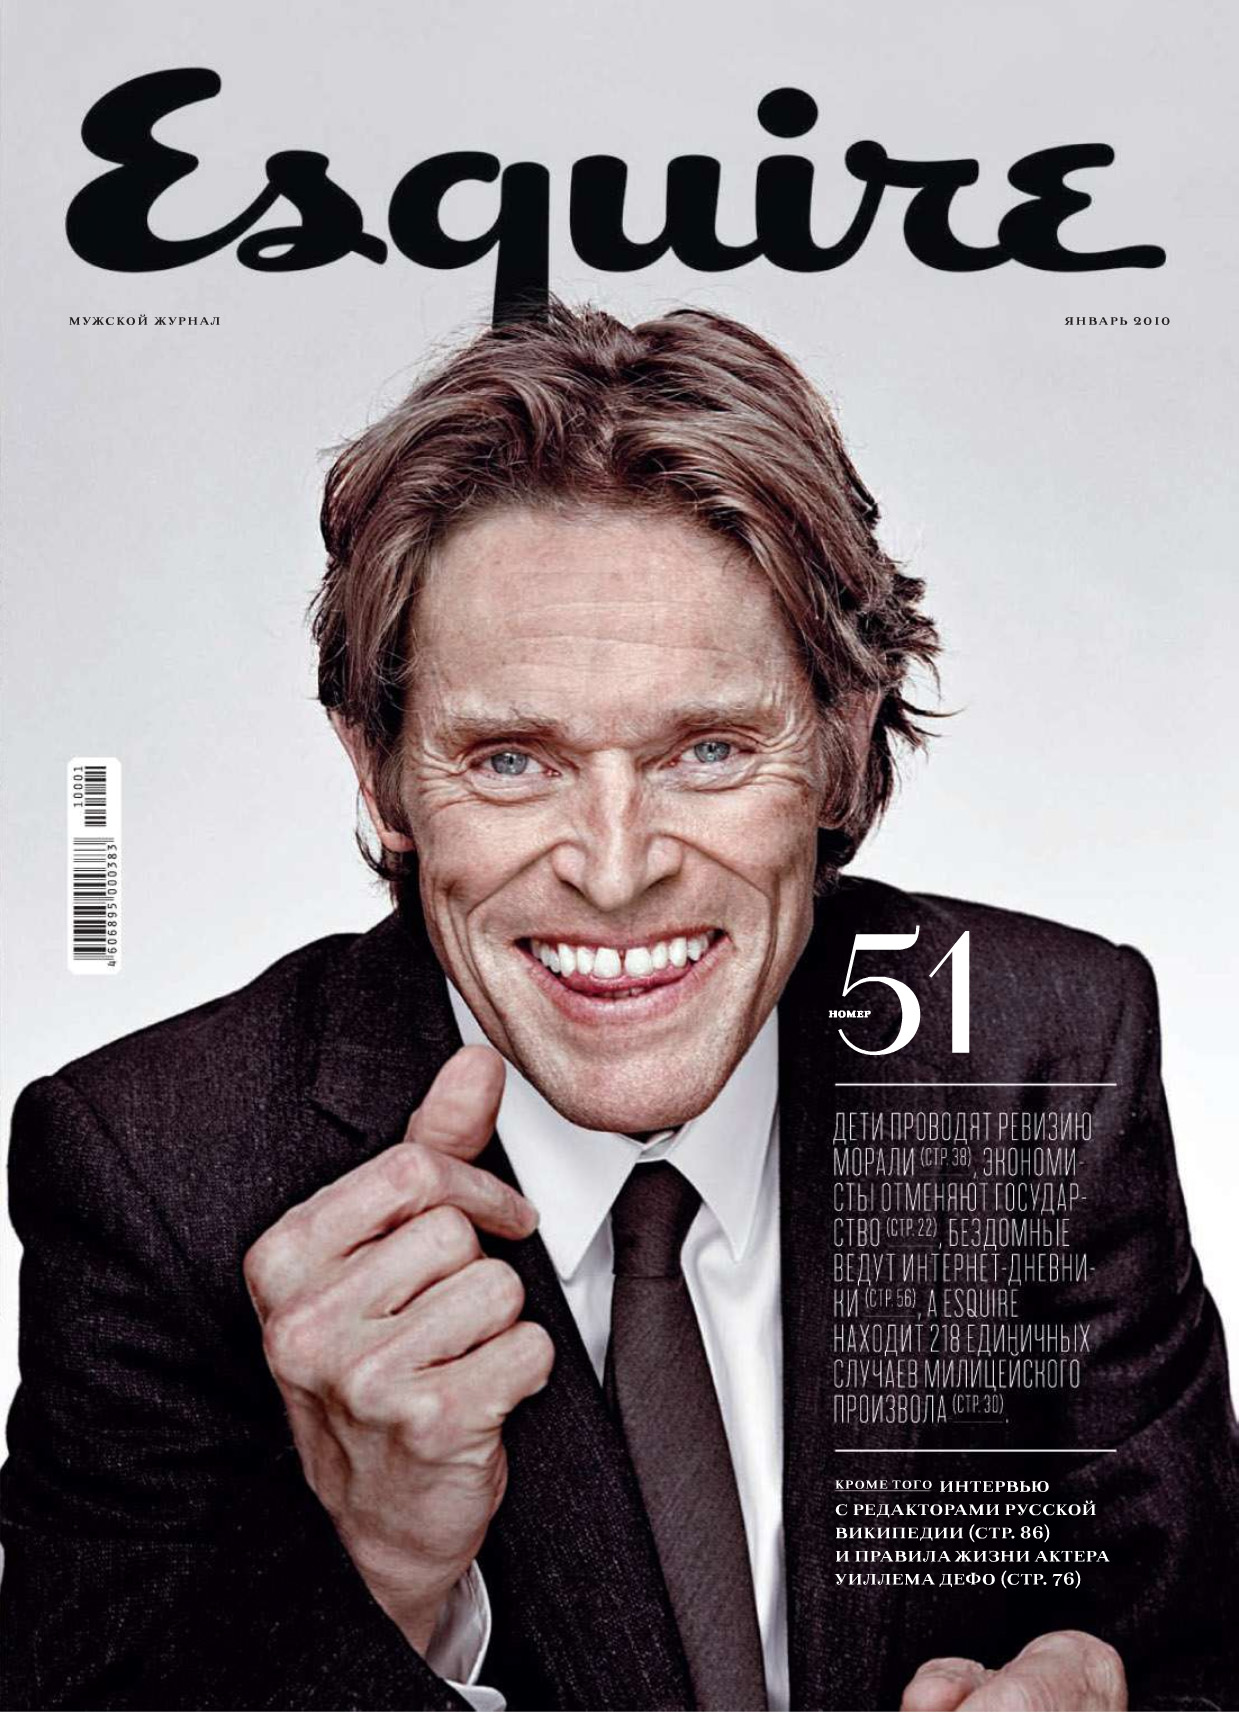 Willem Dafoe photo 19 of 21 pics, wallpaper - photo ...